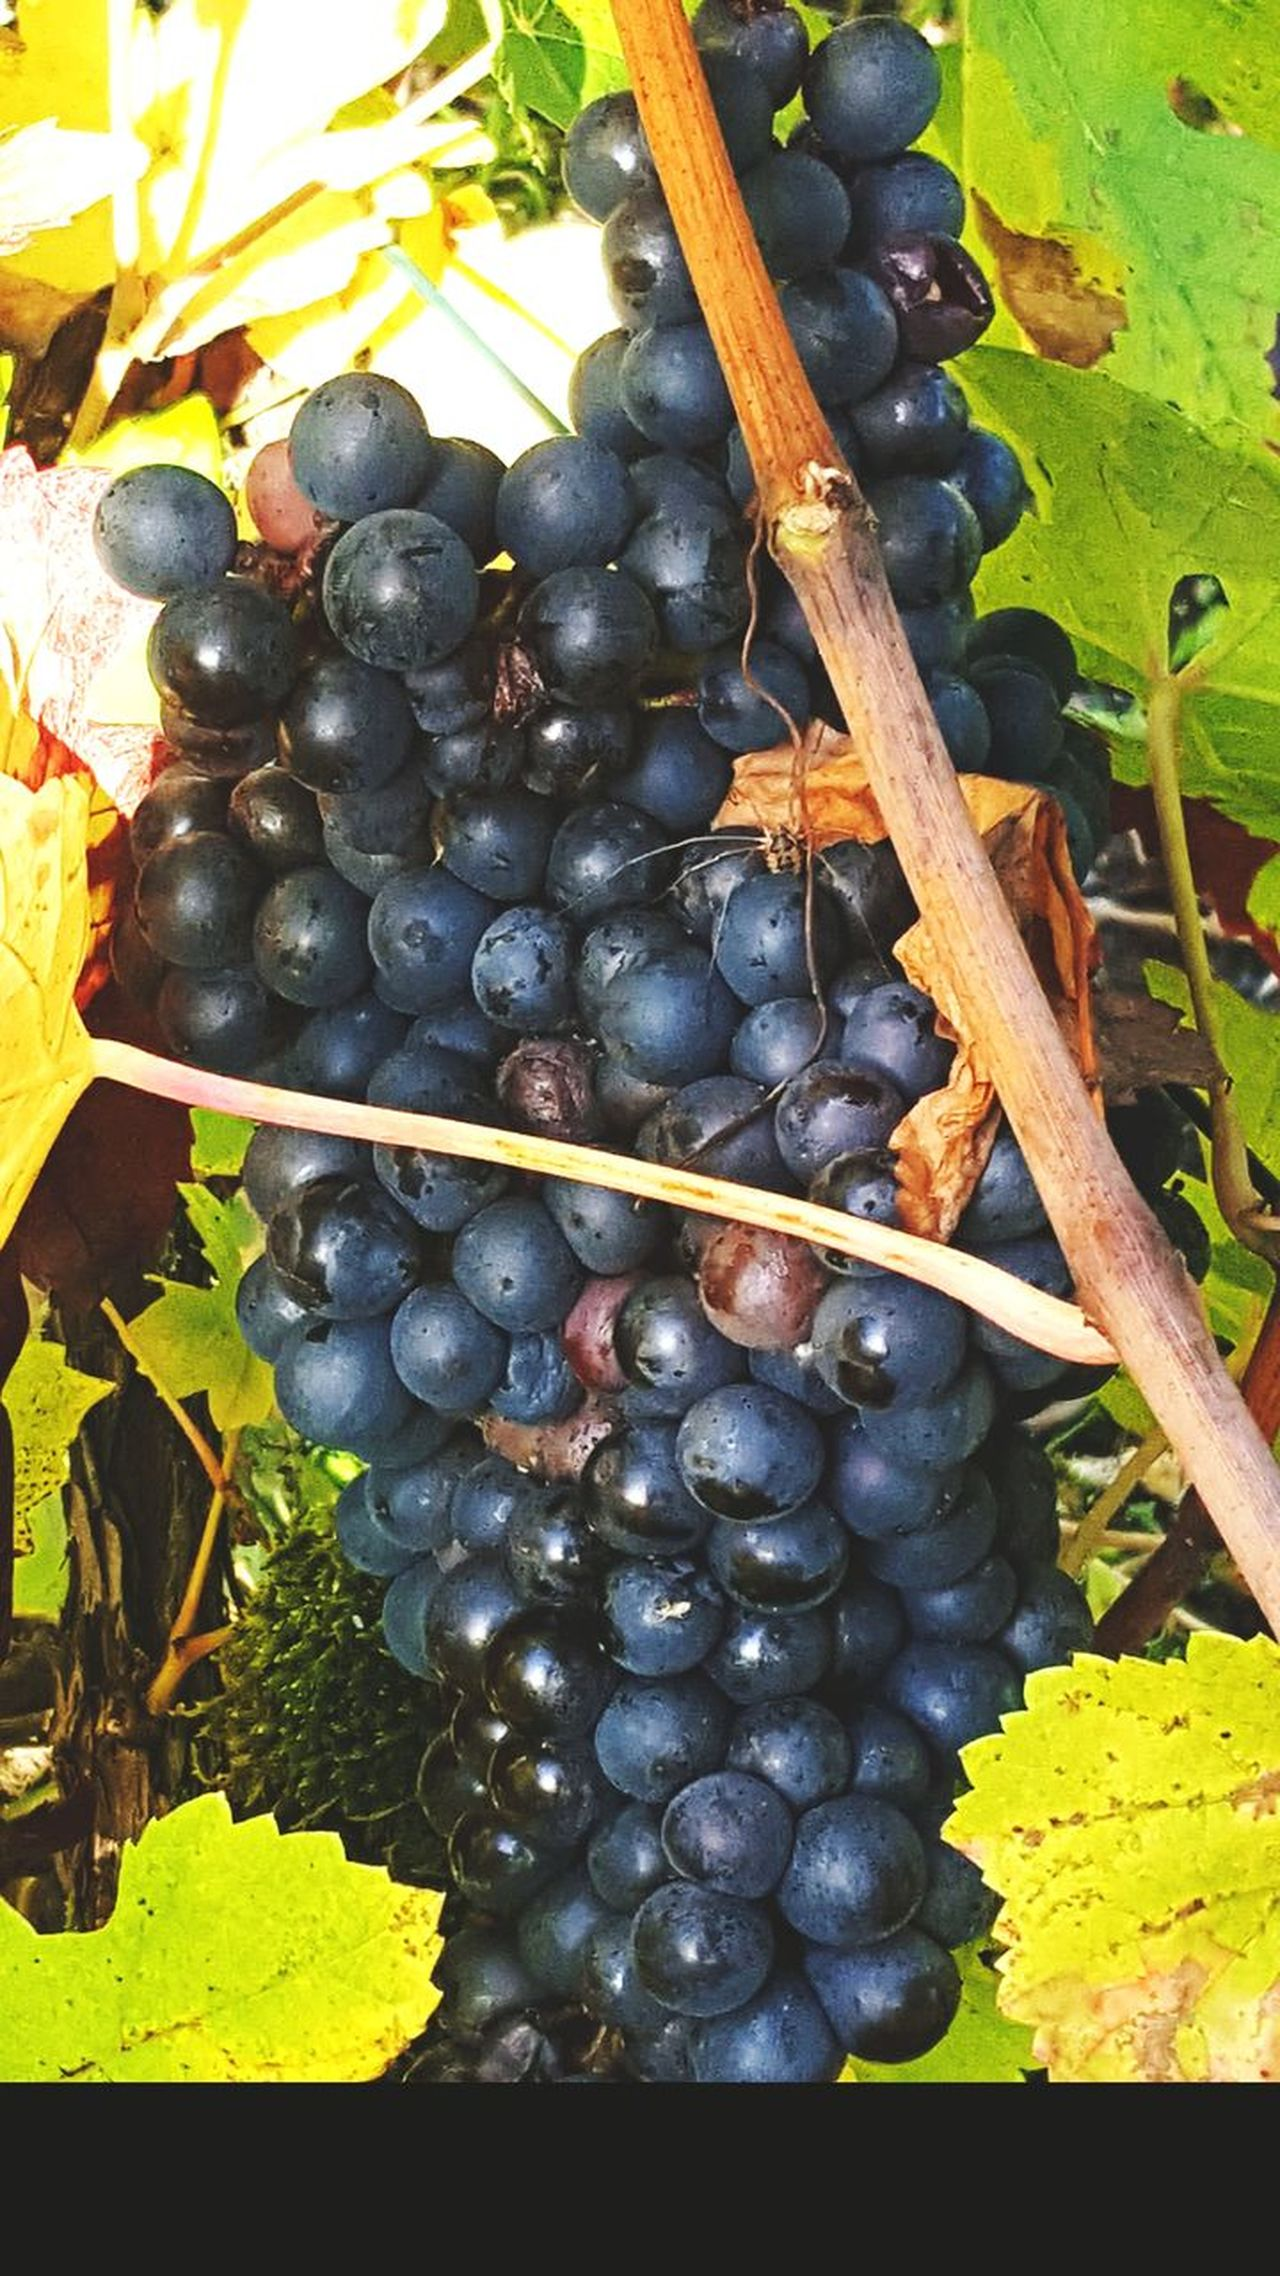 Grapes Vineyard Blackgrapes Food Weintrauben Wein Fruits Fruit Weinberg Weinberge Tasty Tasty😋 Taste Good Champagne Day No People Leaf Fruit Outdoors Healthy Eating Close-up Freshness Nature Growth